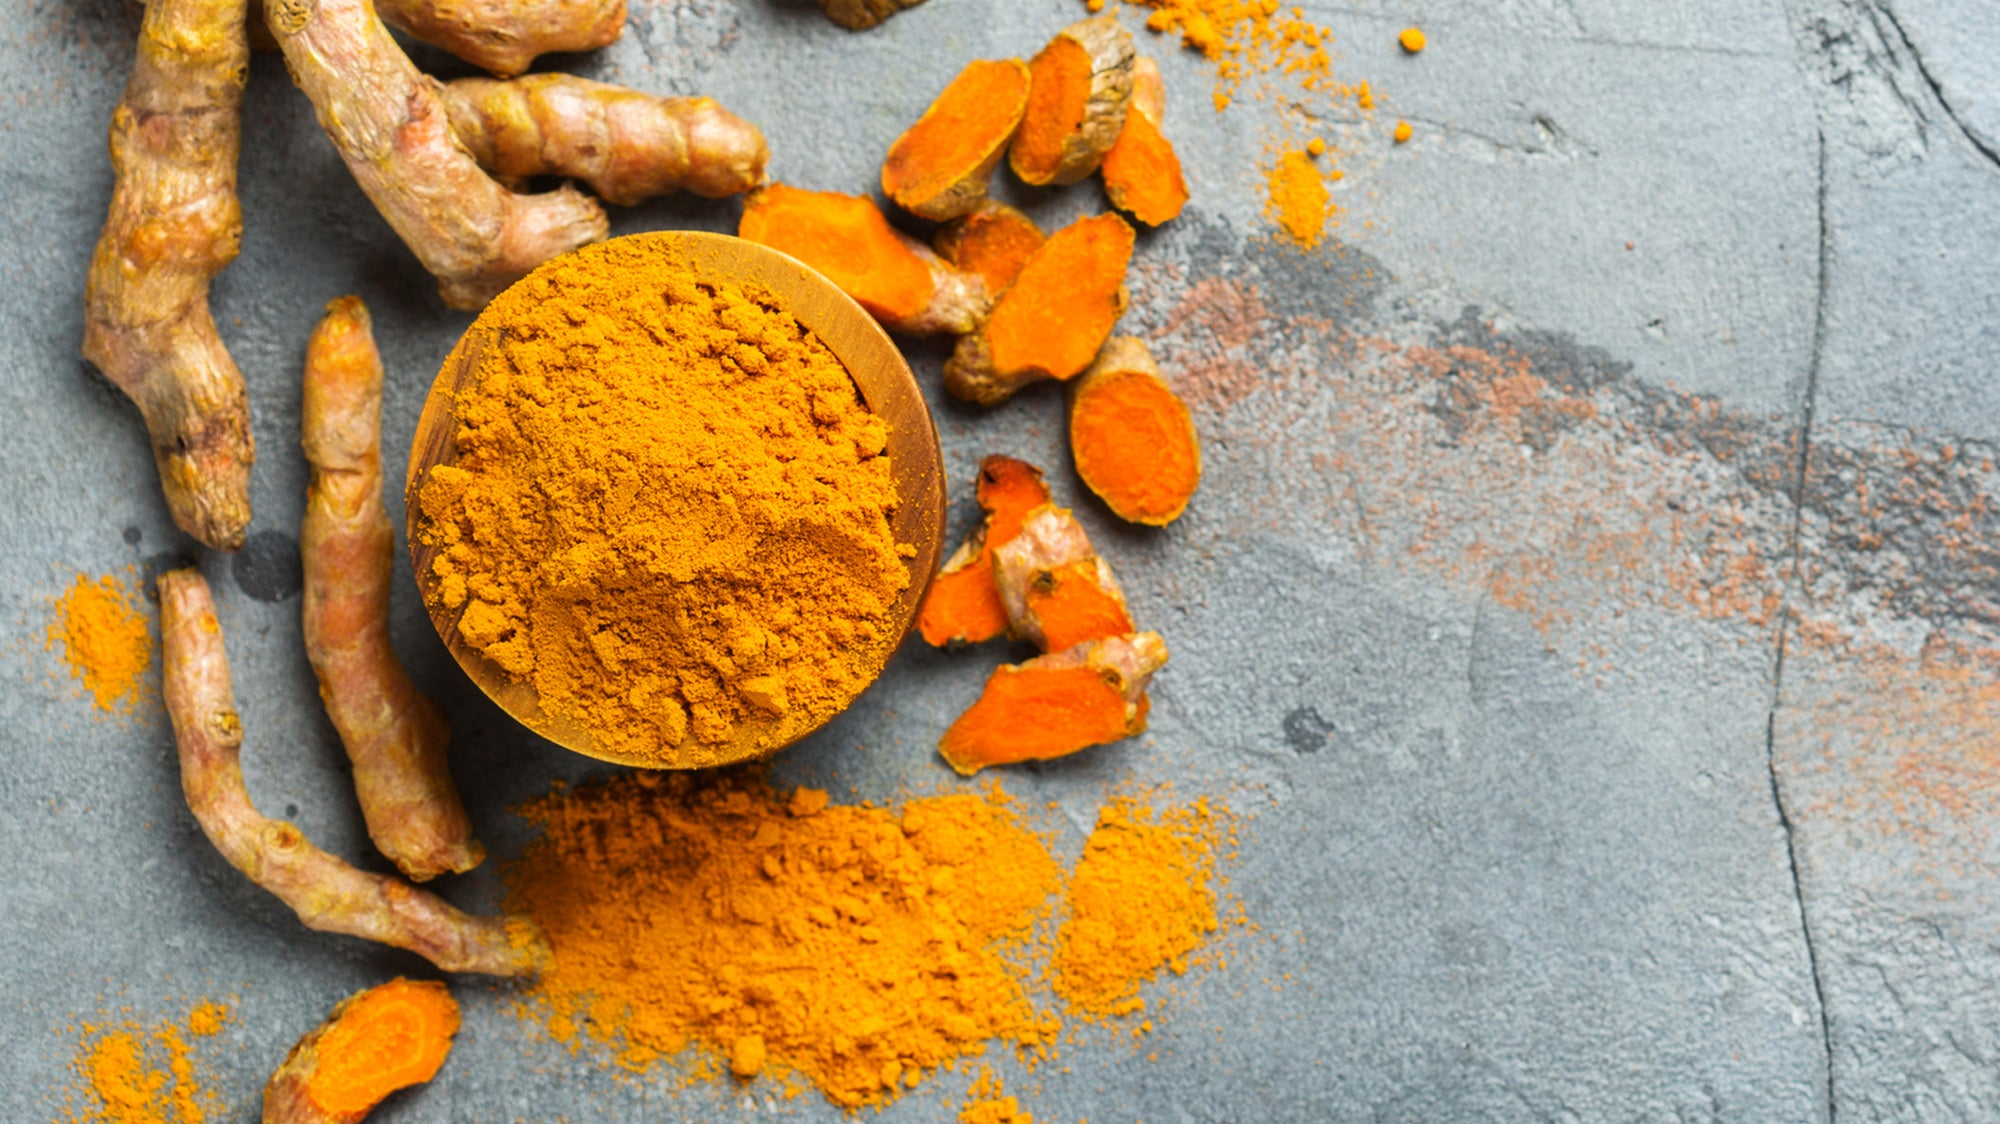 Turmeric for Pain Relief